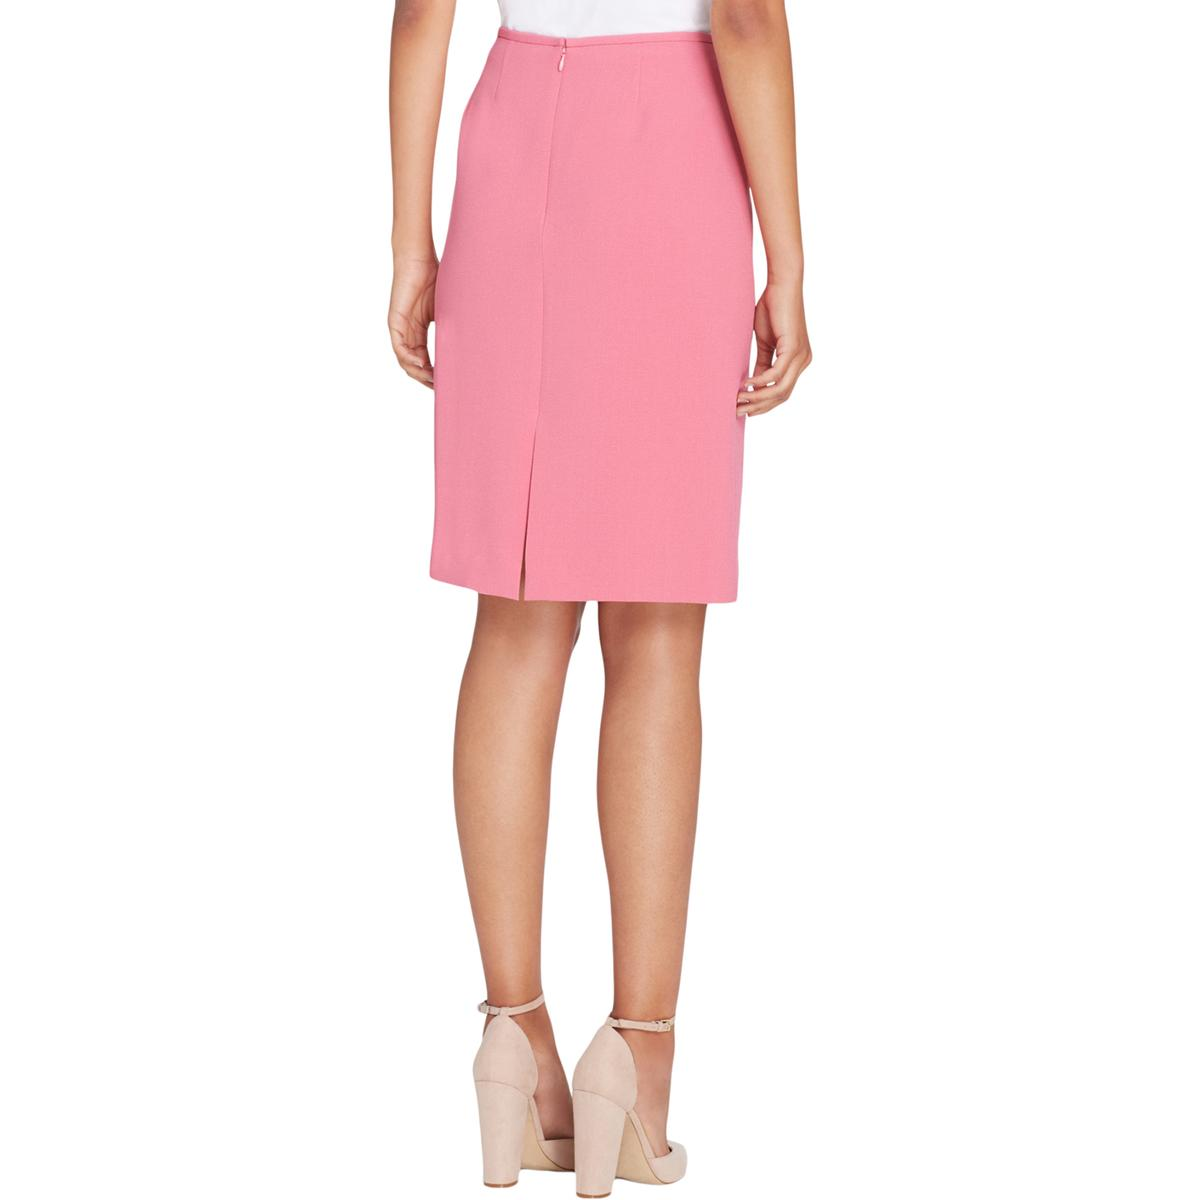 9994b668ea9 Details about Tahari ASL Womens Pink Ponte Knit Professional Pencil Skirt  Plus 18 BHFO 3985